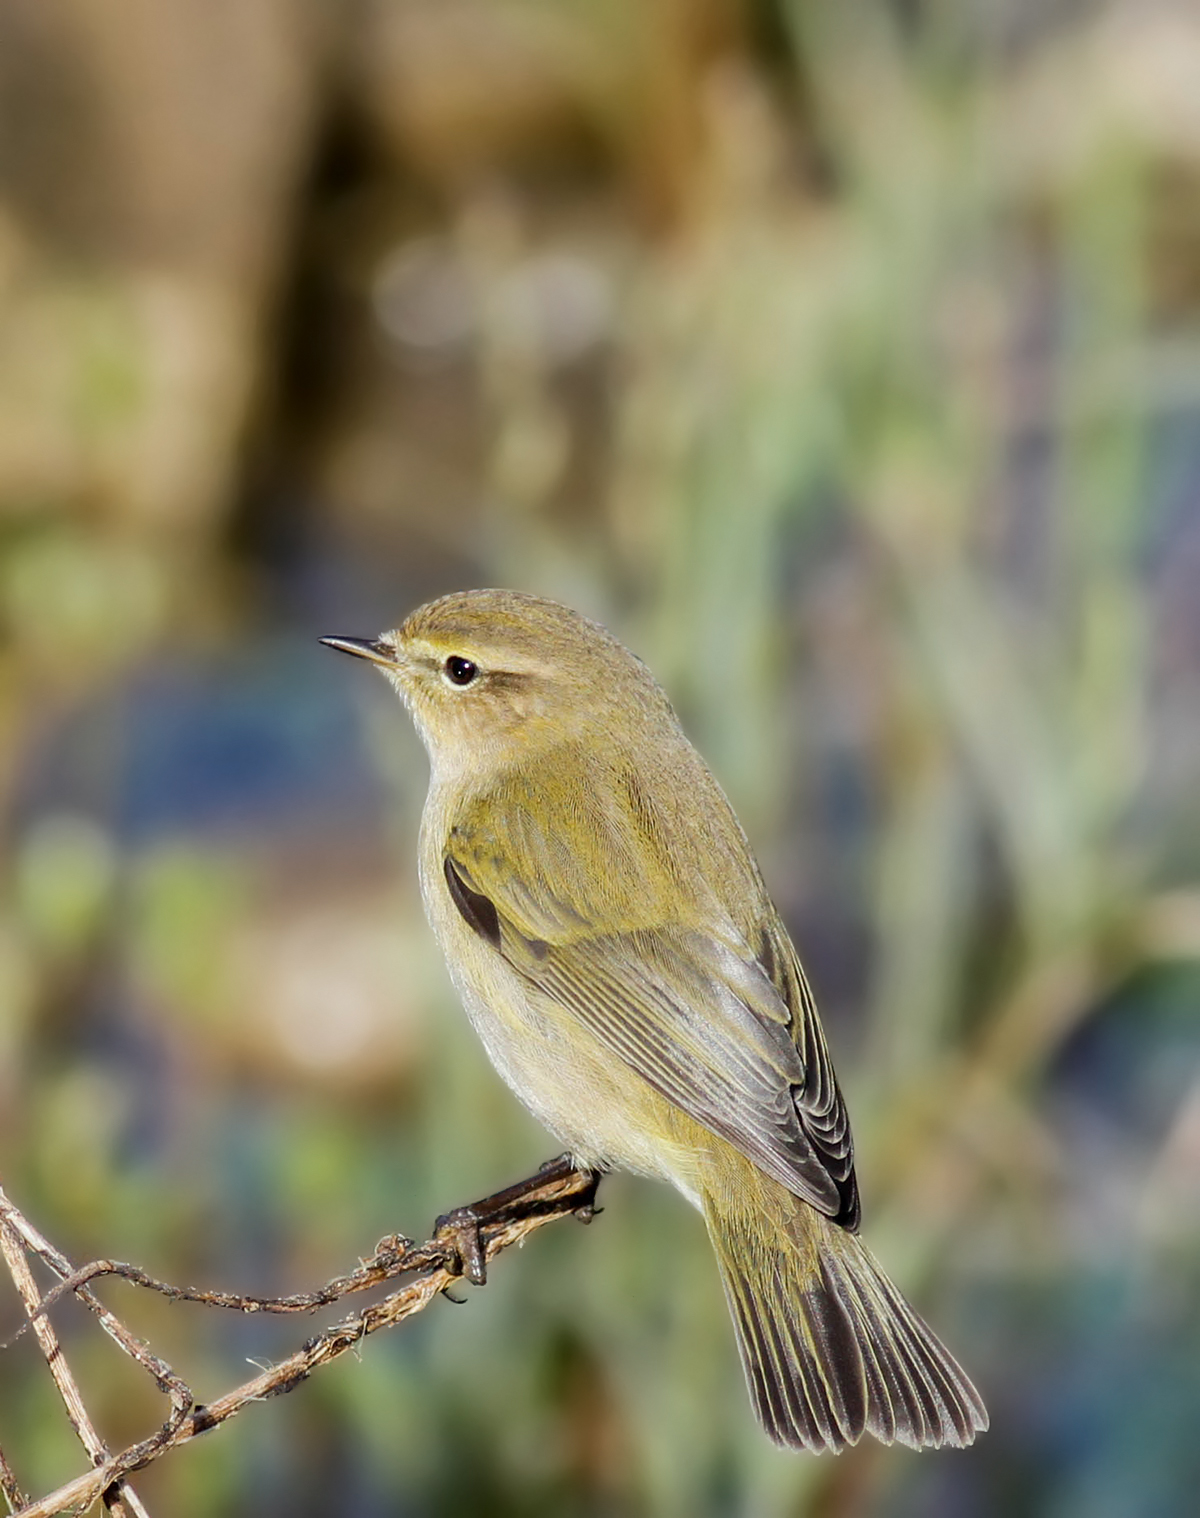 Common Chiffchaff Cyprus Birding Tours Cyprus Bird watching Tours Cyprus Birds Bird is the Word ecotours birdguide